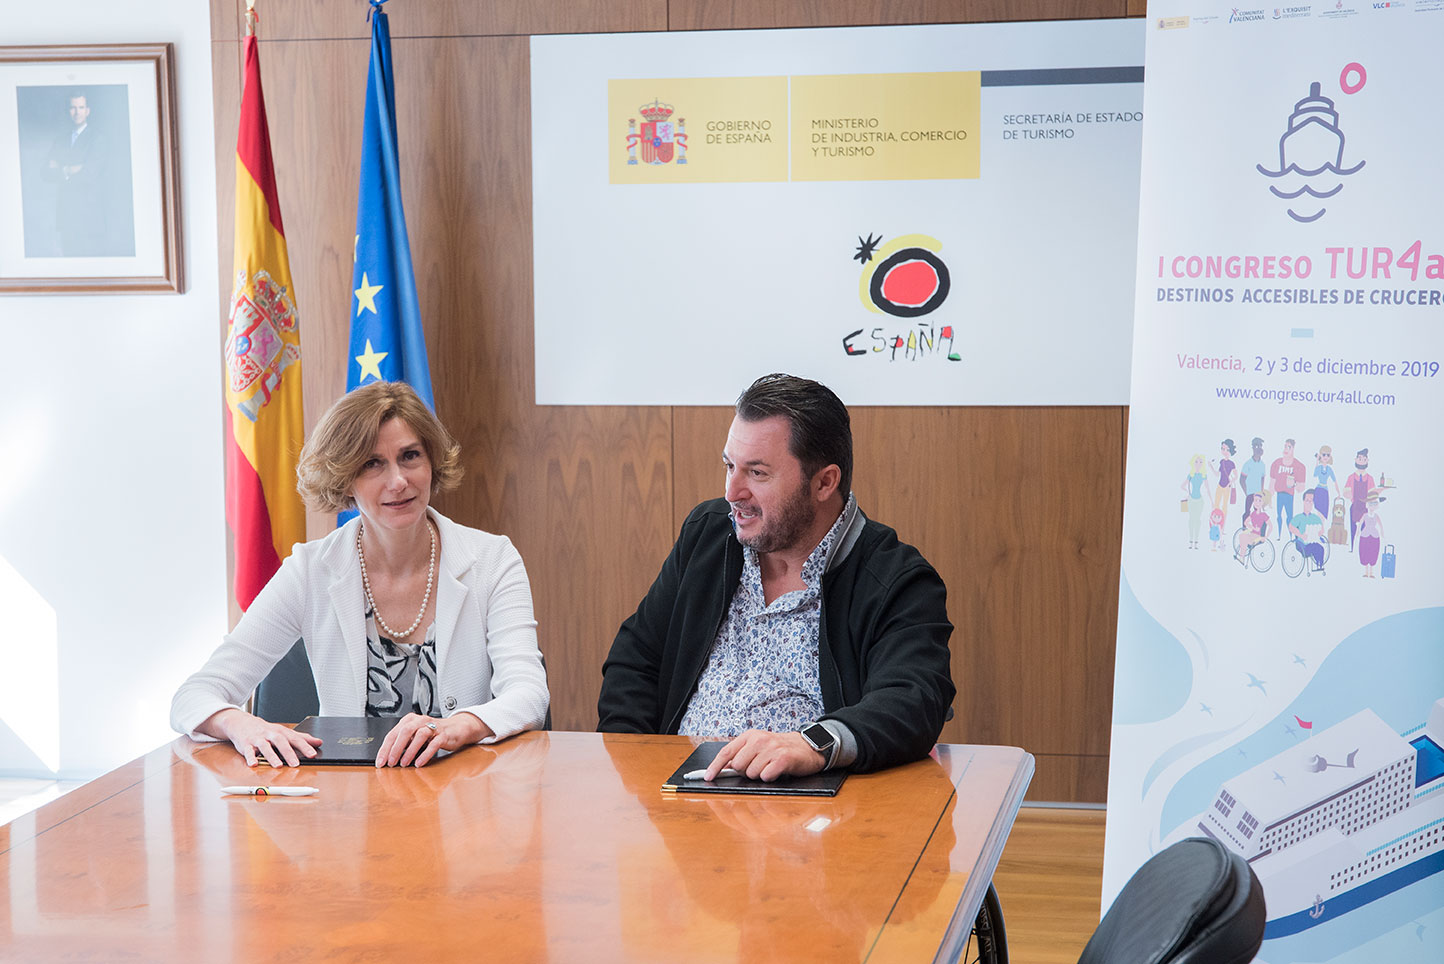 Signing-of-agreement-with-Spanish-Secretary-of-State-and-PREDIF-President